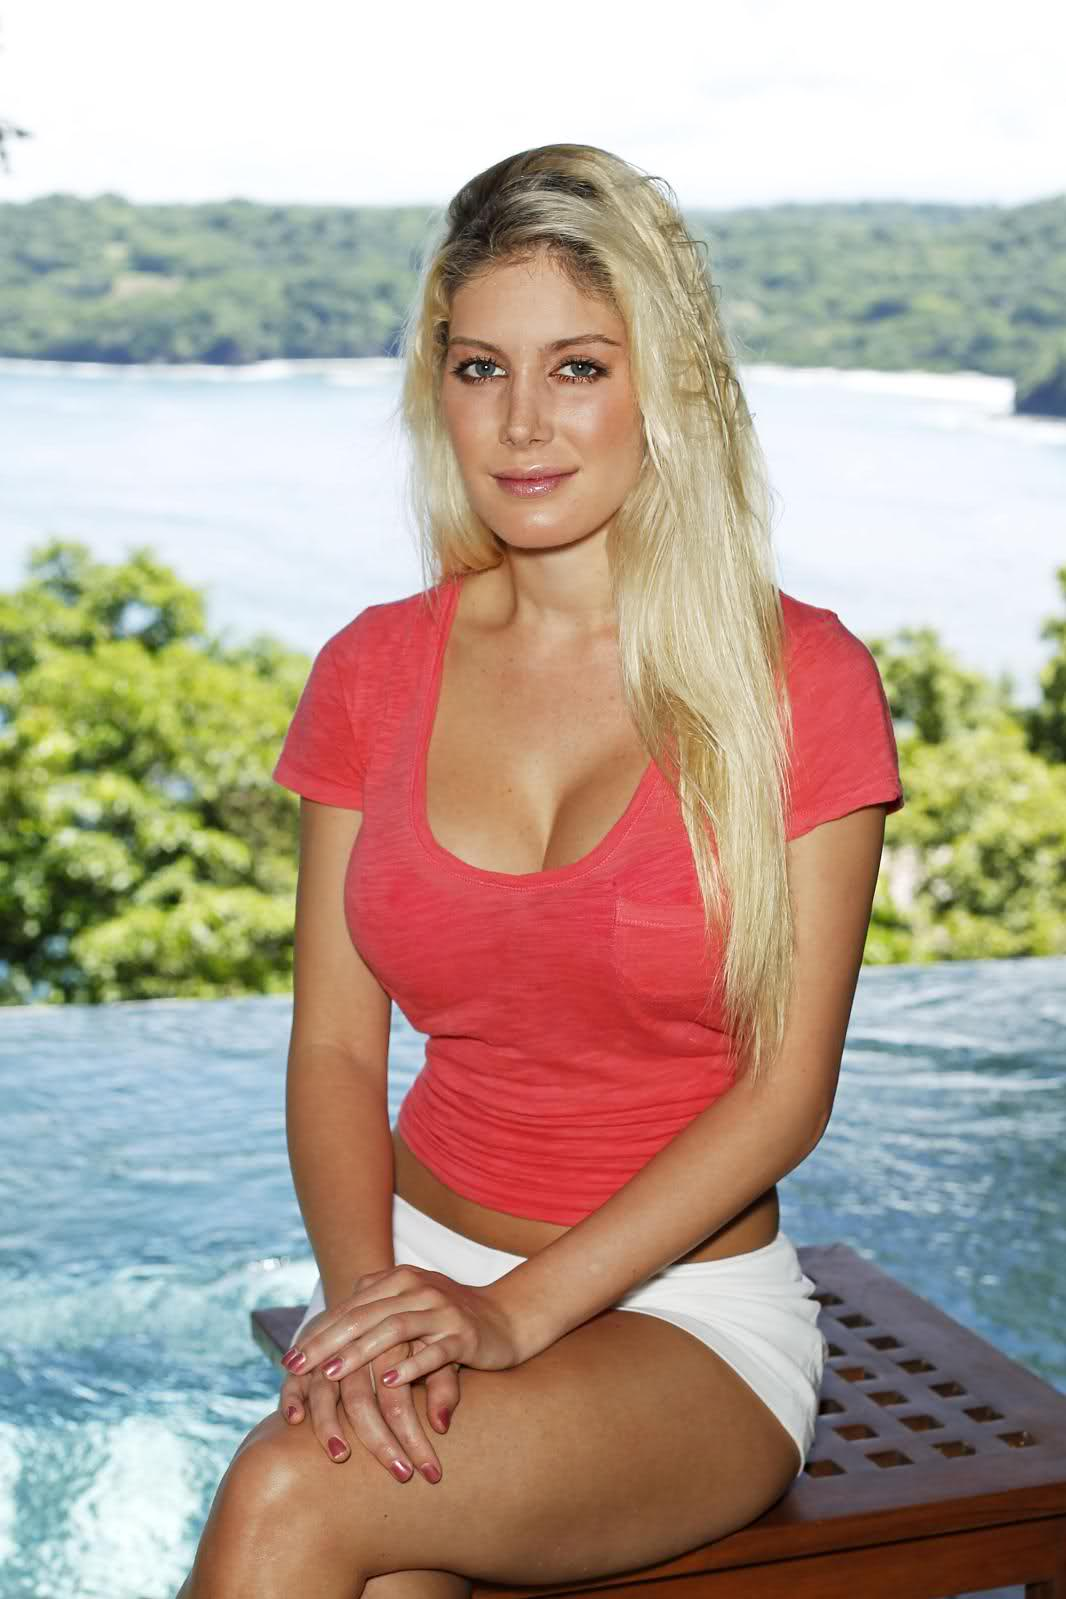 Heidi Montag Is One Plastic Surgery Chick Gallery